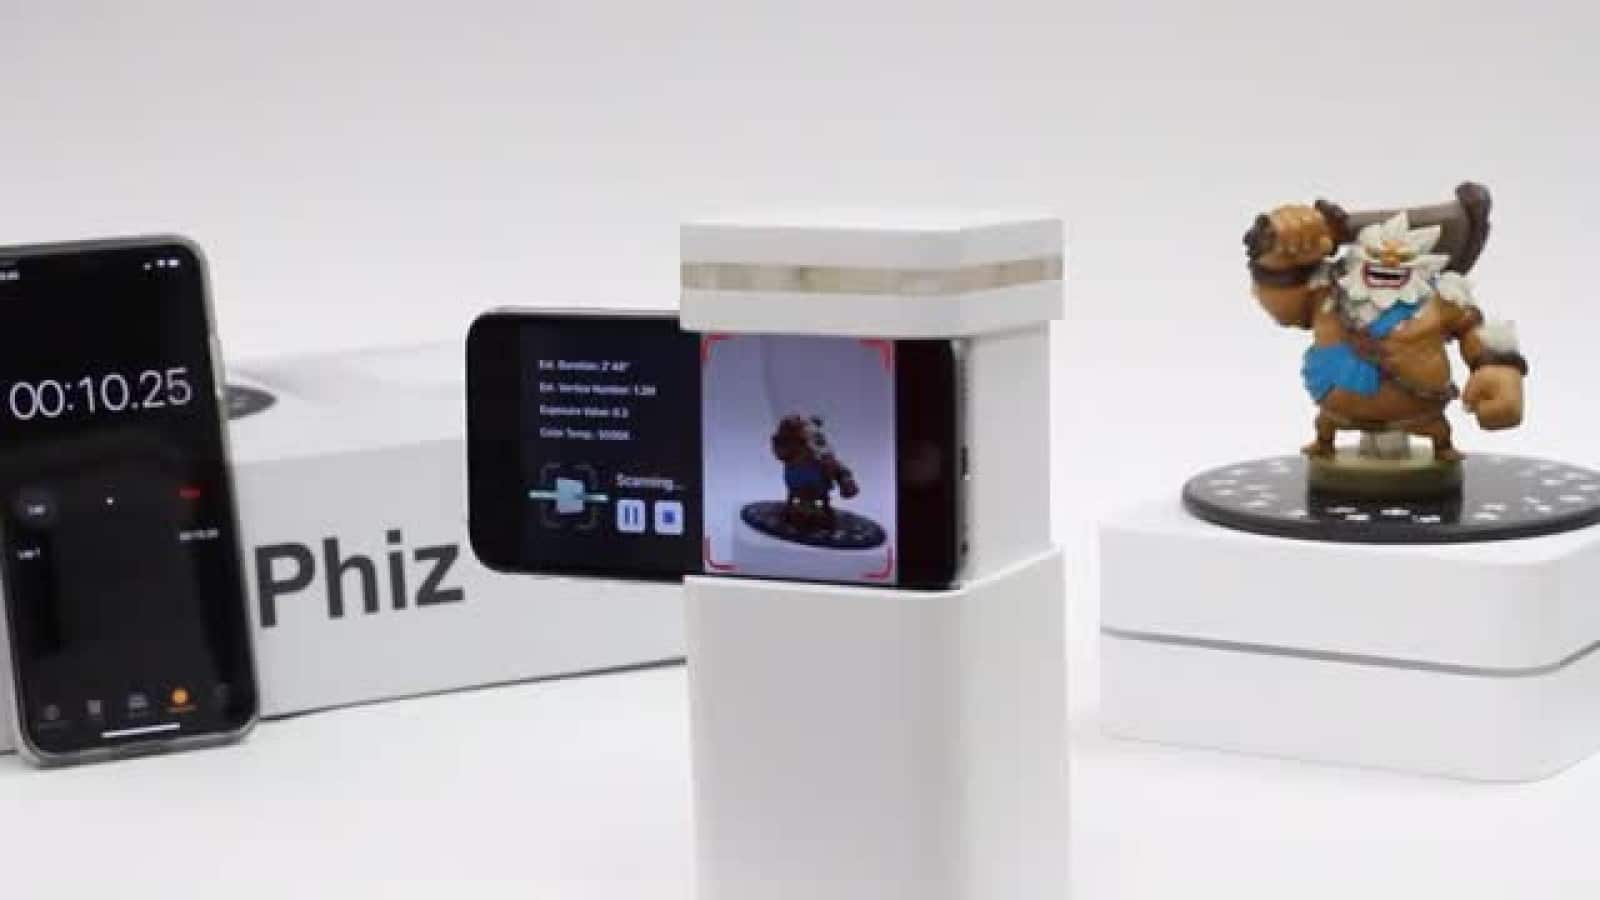 phiz 3d scanner and toys